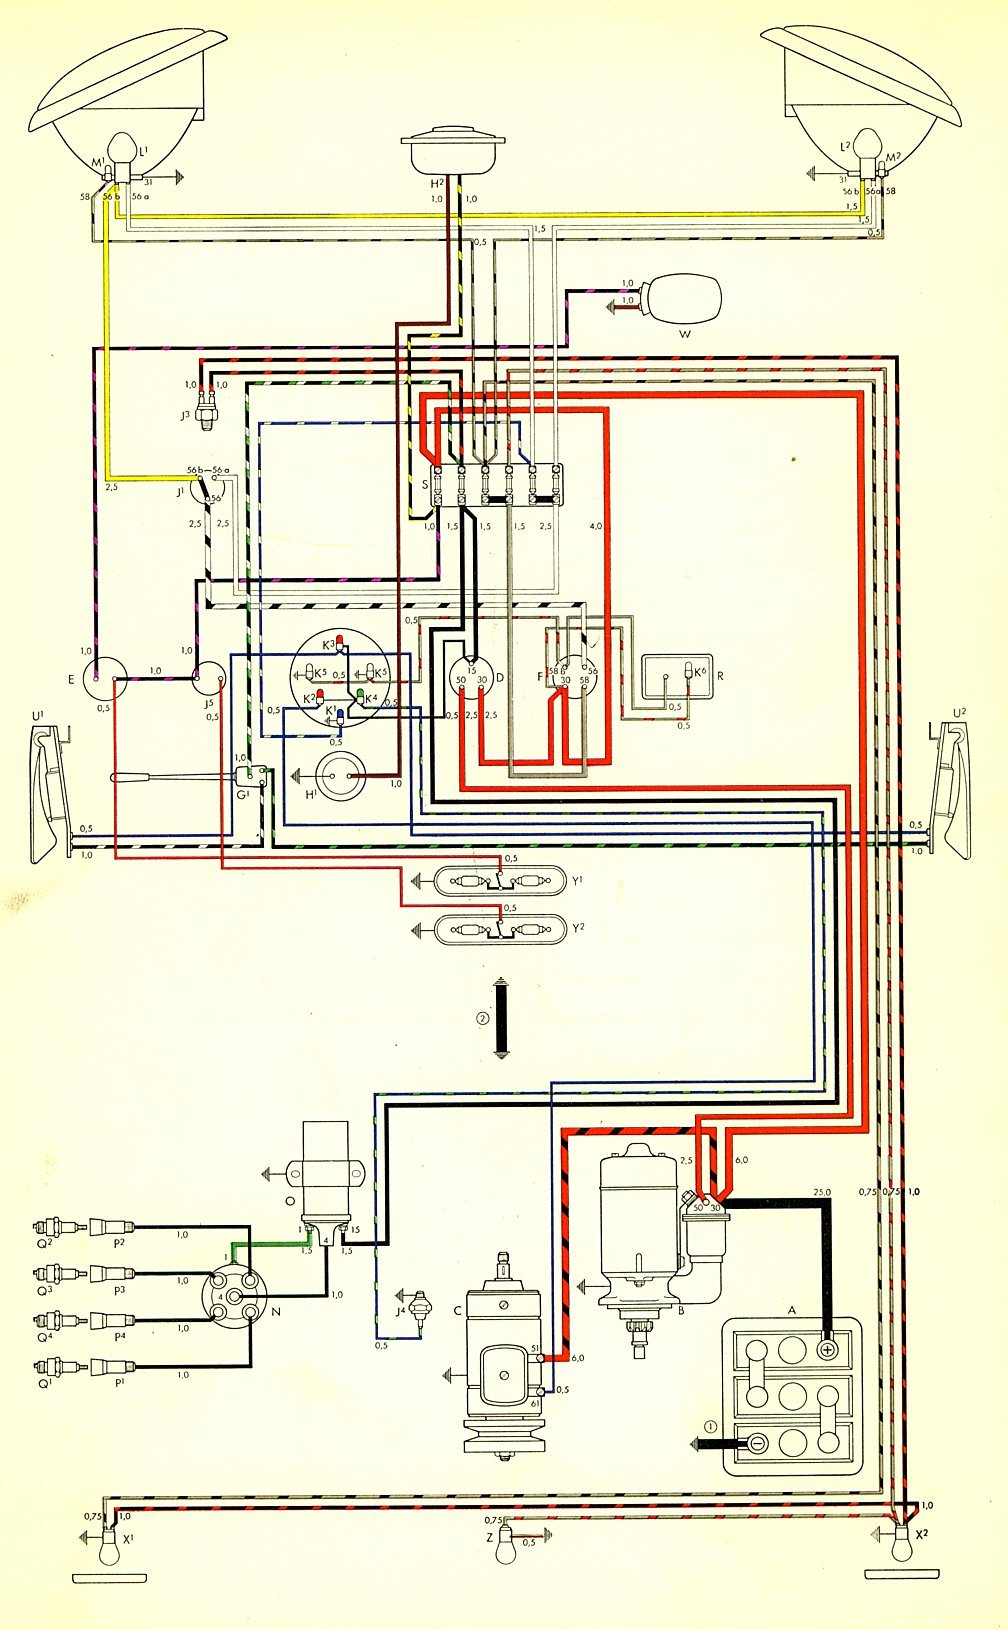 bus_59 thesamba com type 2 wiring diagrams find wiring diagram for 87 ford f 150 at bayanpartner.co